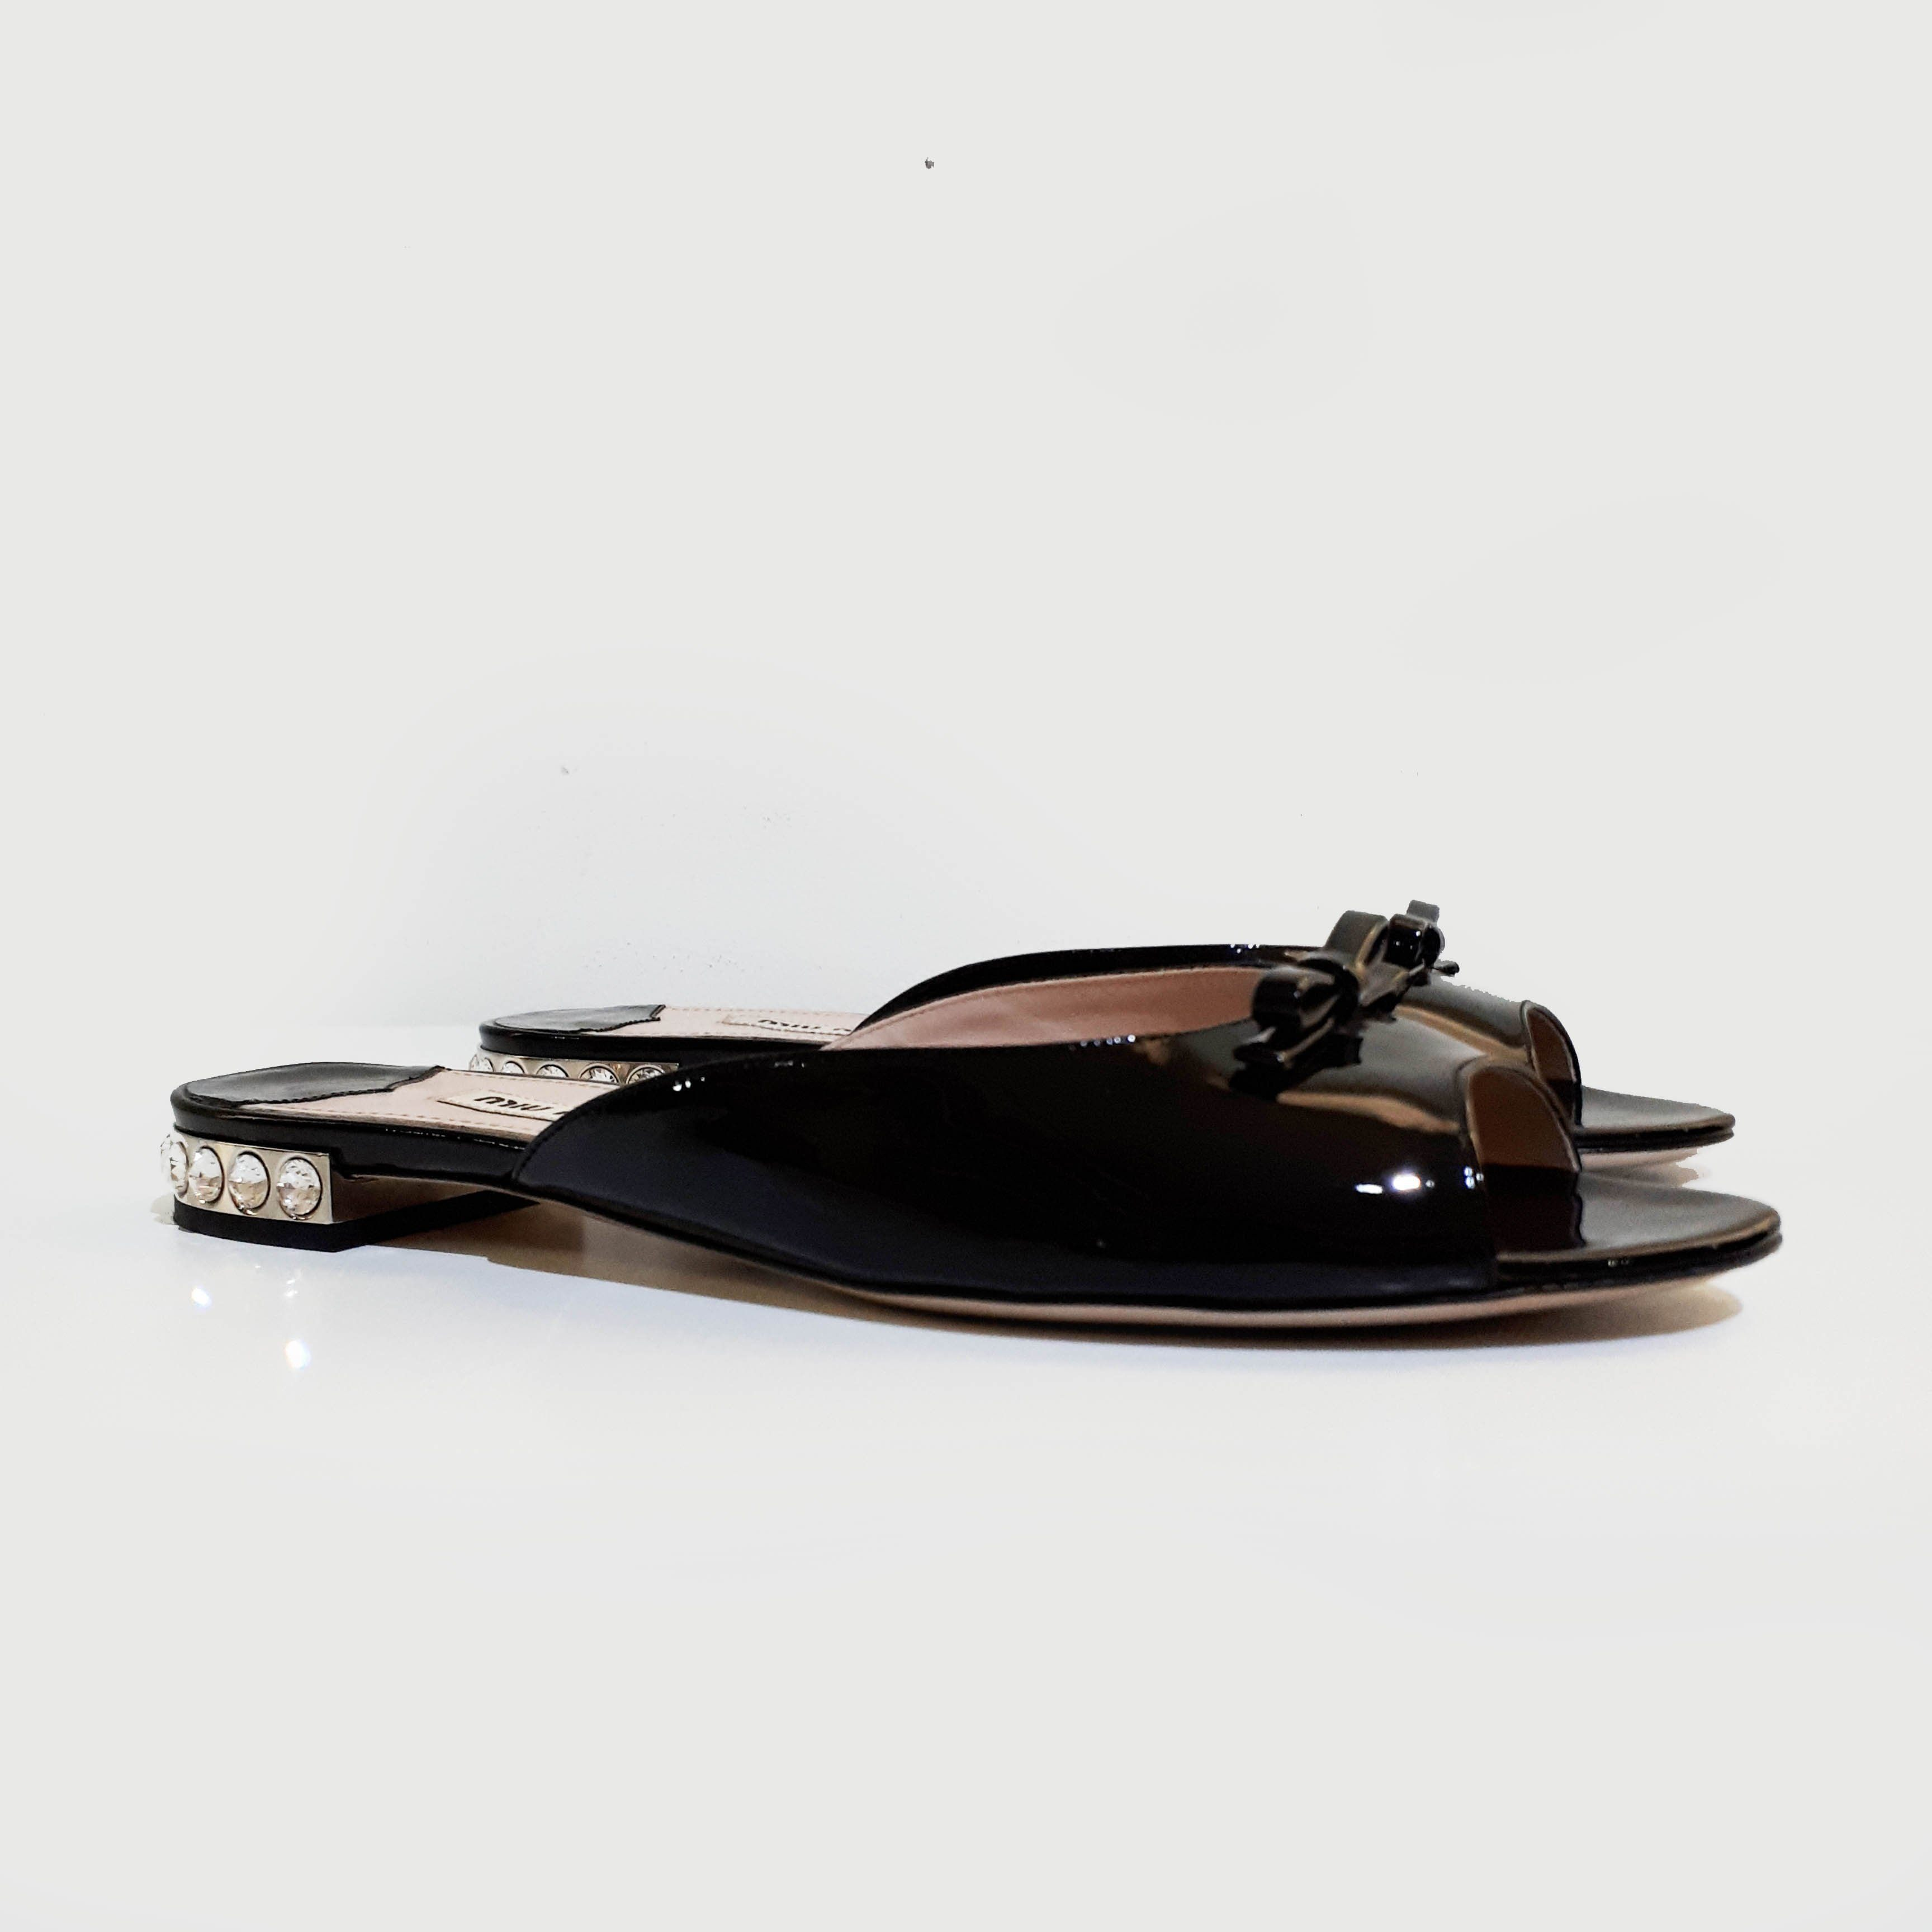 Miu Miu Black Patent Leather Slip-On Sandal